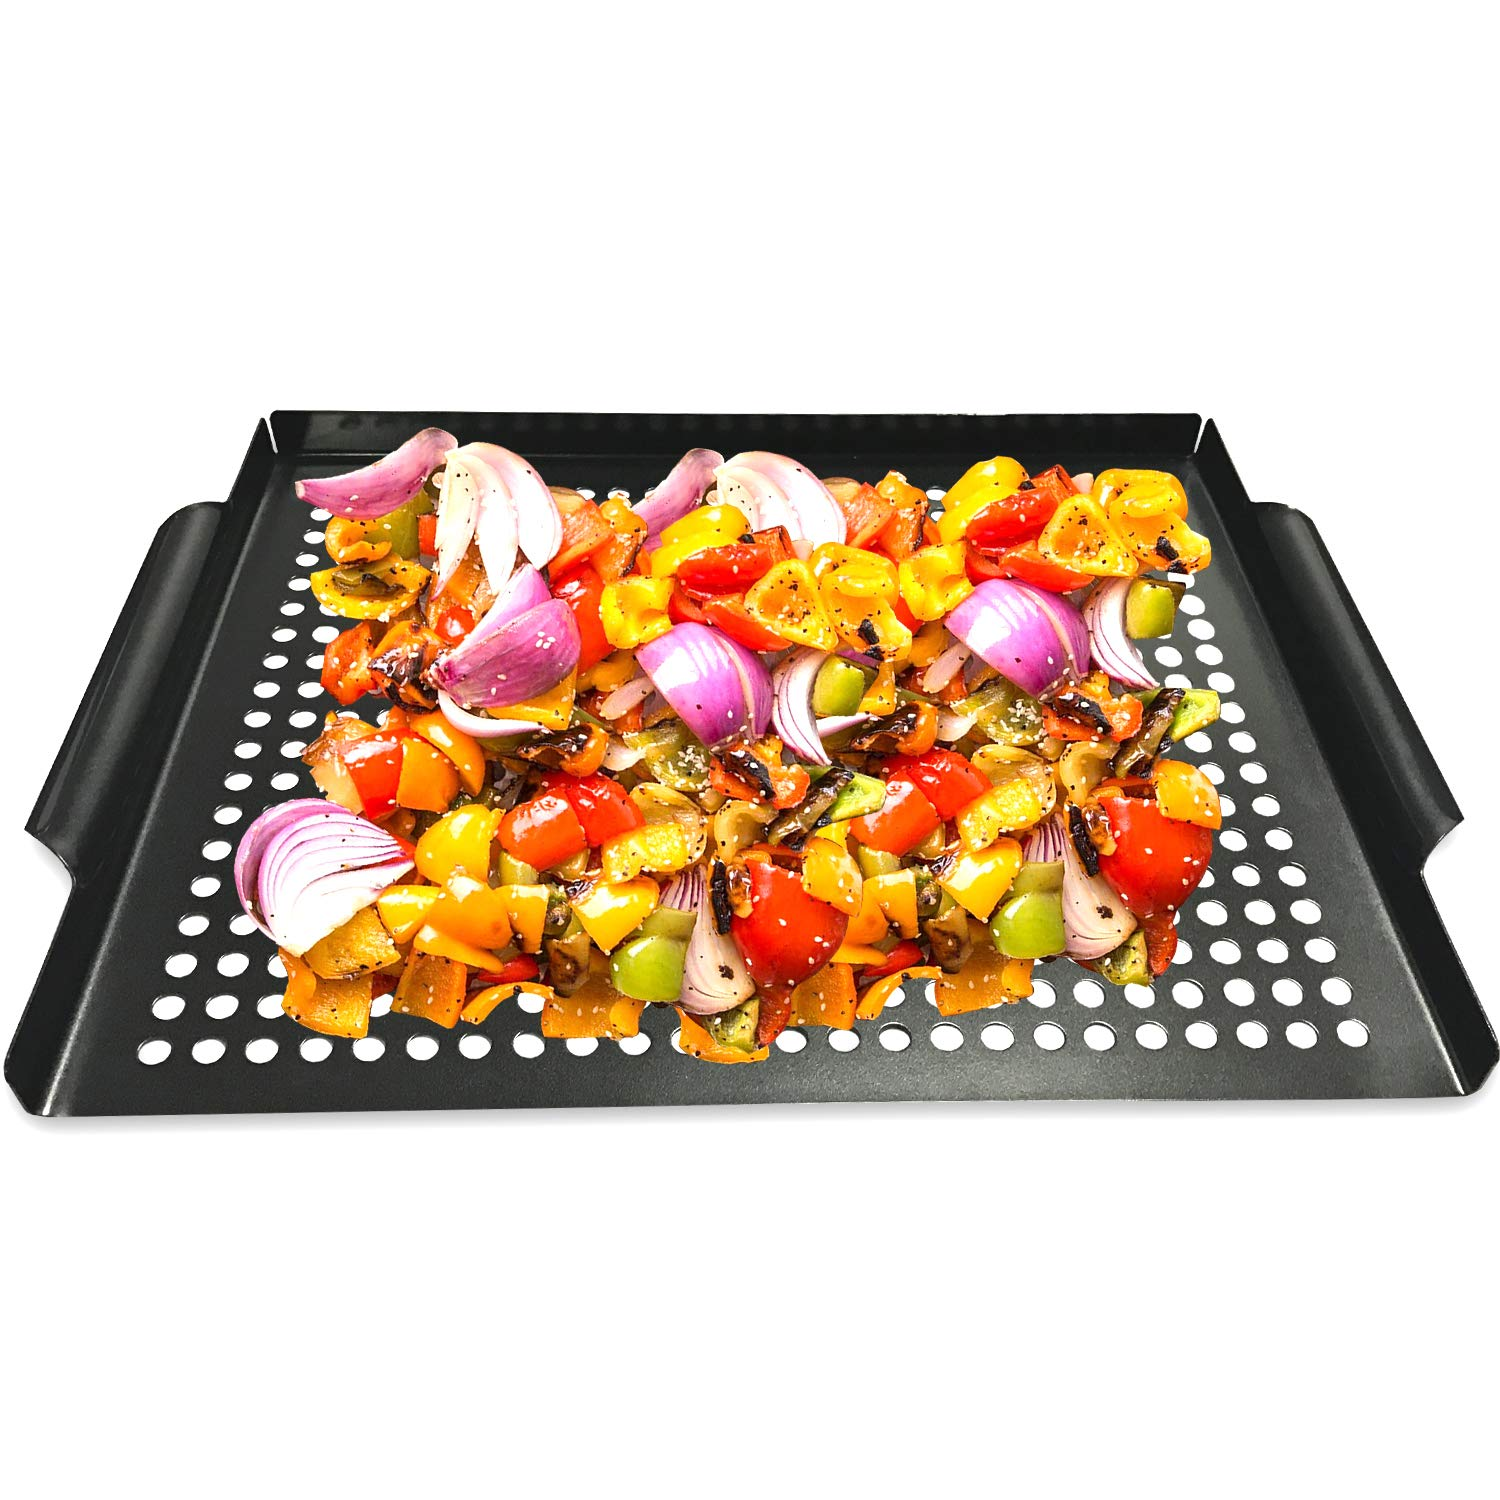 MEHE Grill Basket, Thicken Will not Warped, Nonstick Grilling Topper 14.6 ''x11.4'' Pan BBQ Accessory for Grilling Vegetable, Fish, Shrimp, Meat, Camping Cookware